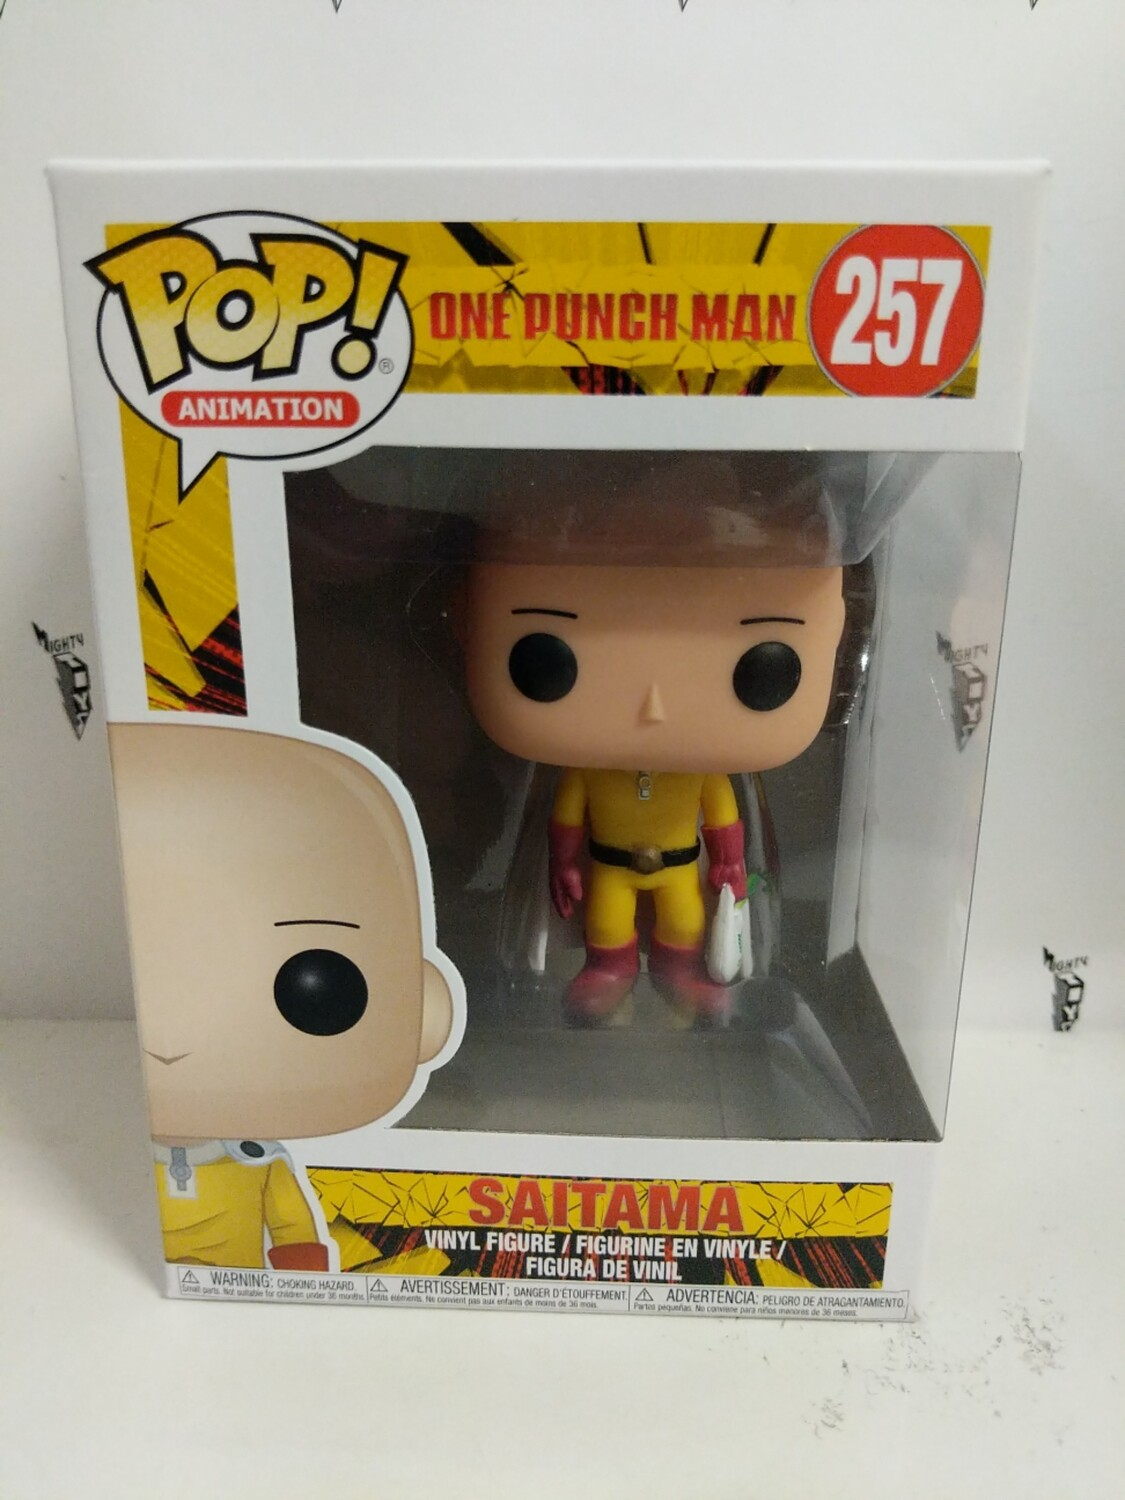 One Punch Man - Saitama Pop! Vinyl Figure (box damaged) - c